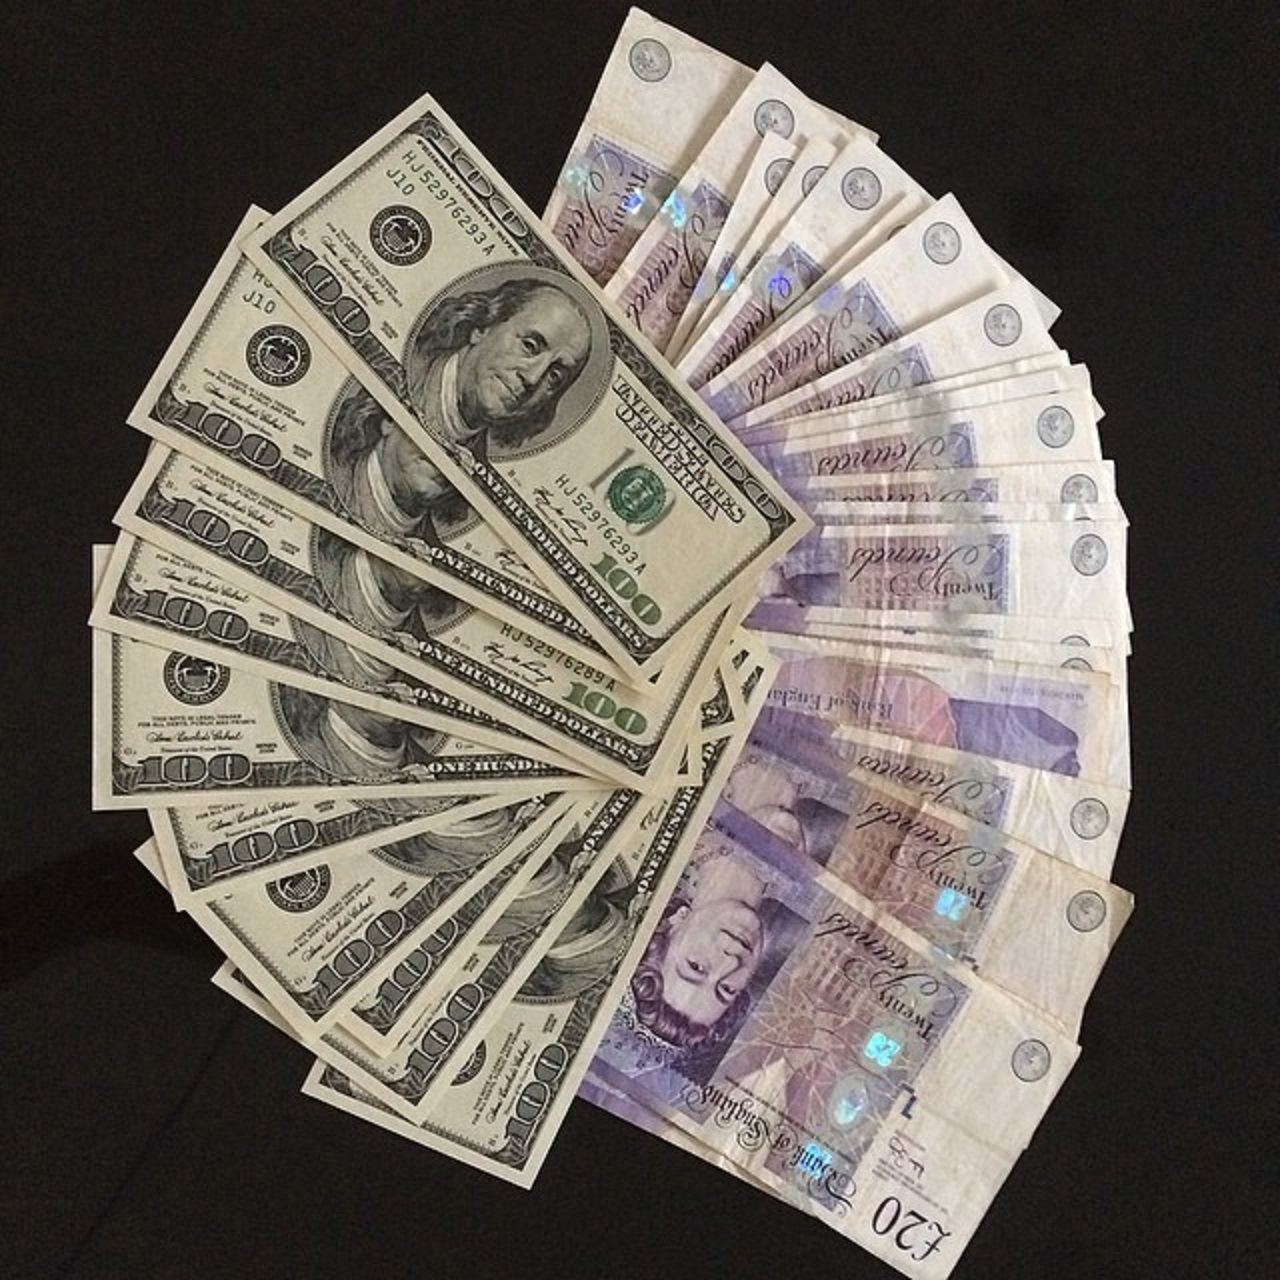 BUY SUPER HIGH QUALITY FAKE MONEY ONLINE GBP, DOLLAR,EURO